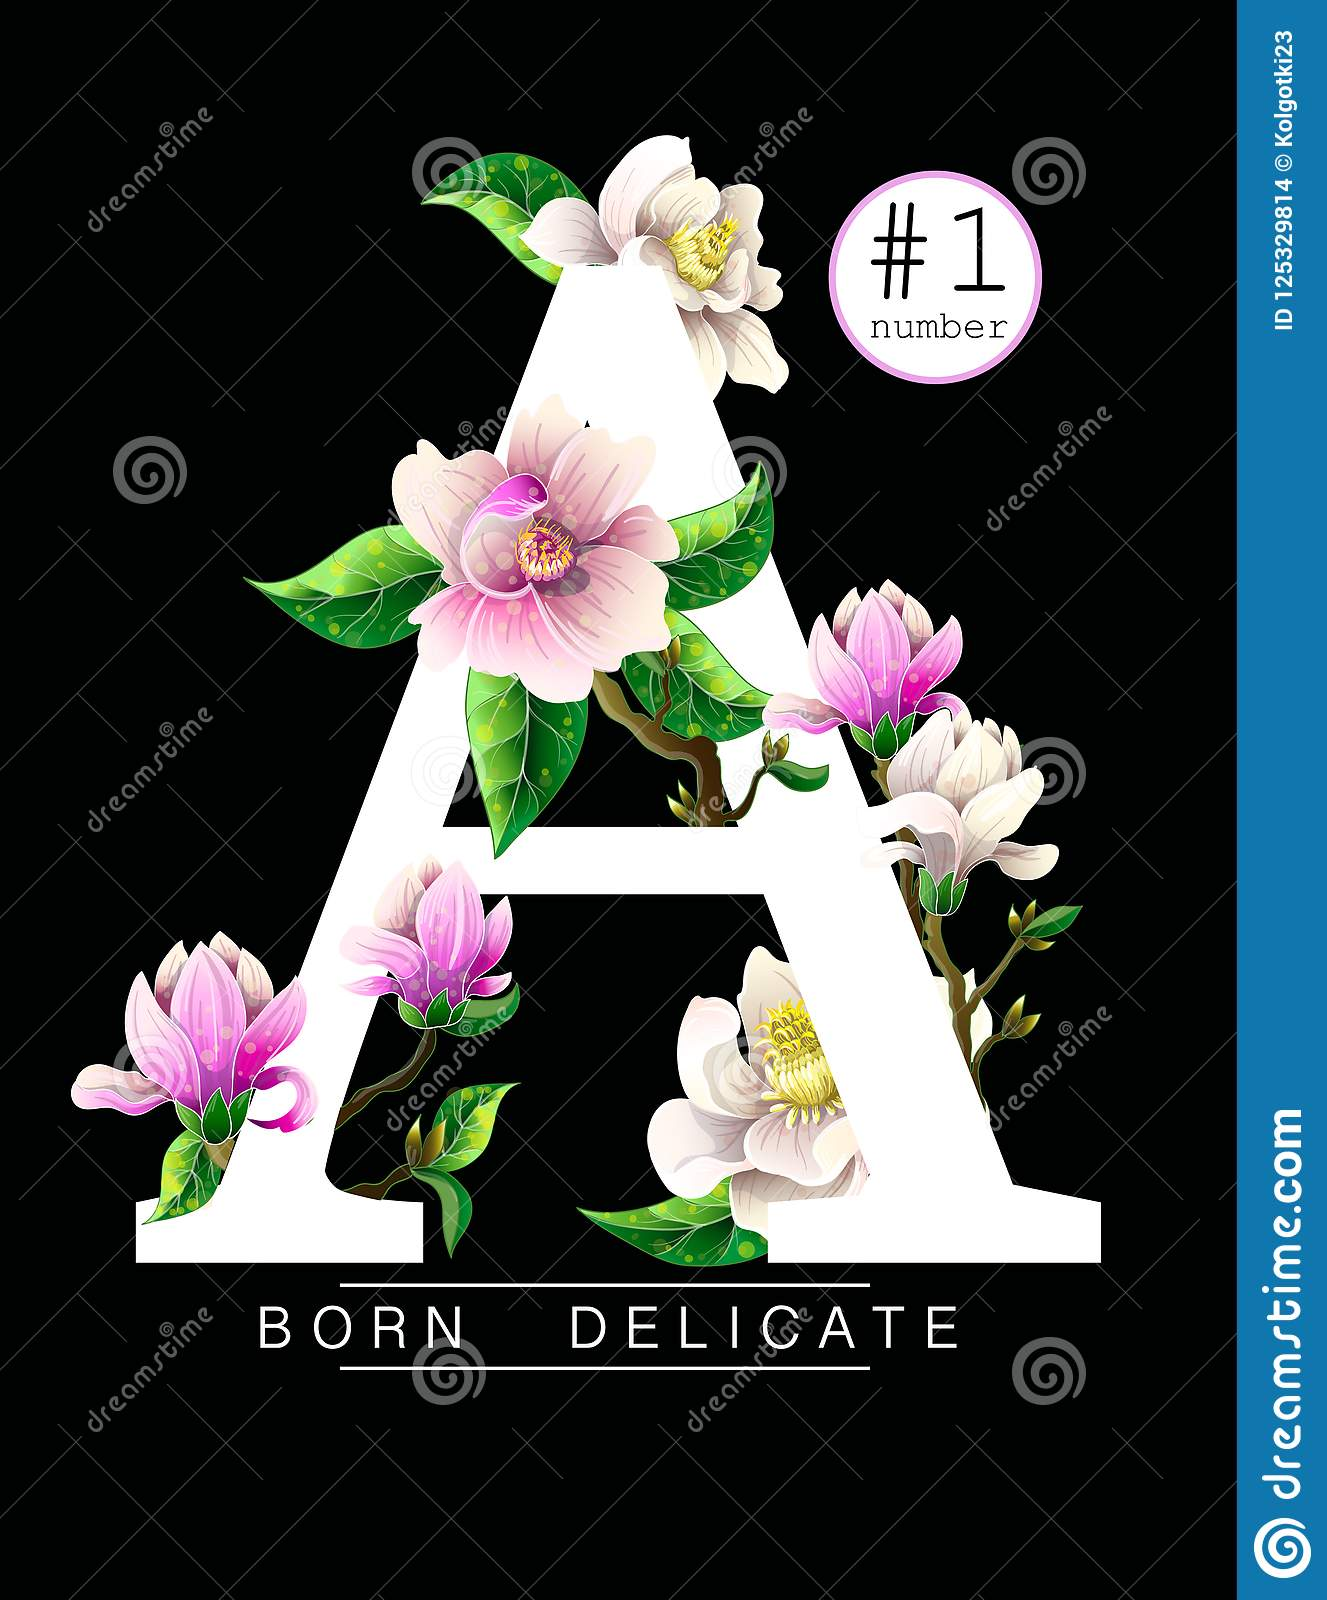 Design T Shirt With Magnolia Flowers And Slogan Vector Illustration